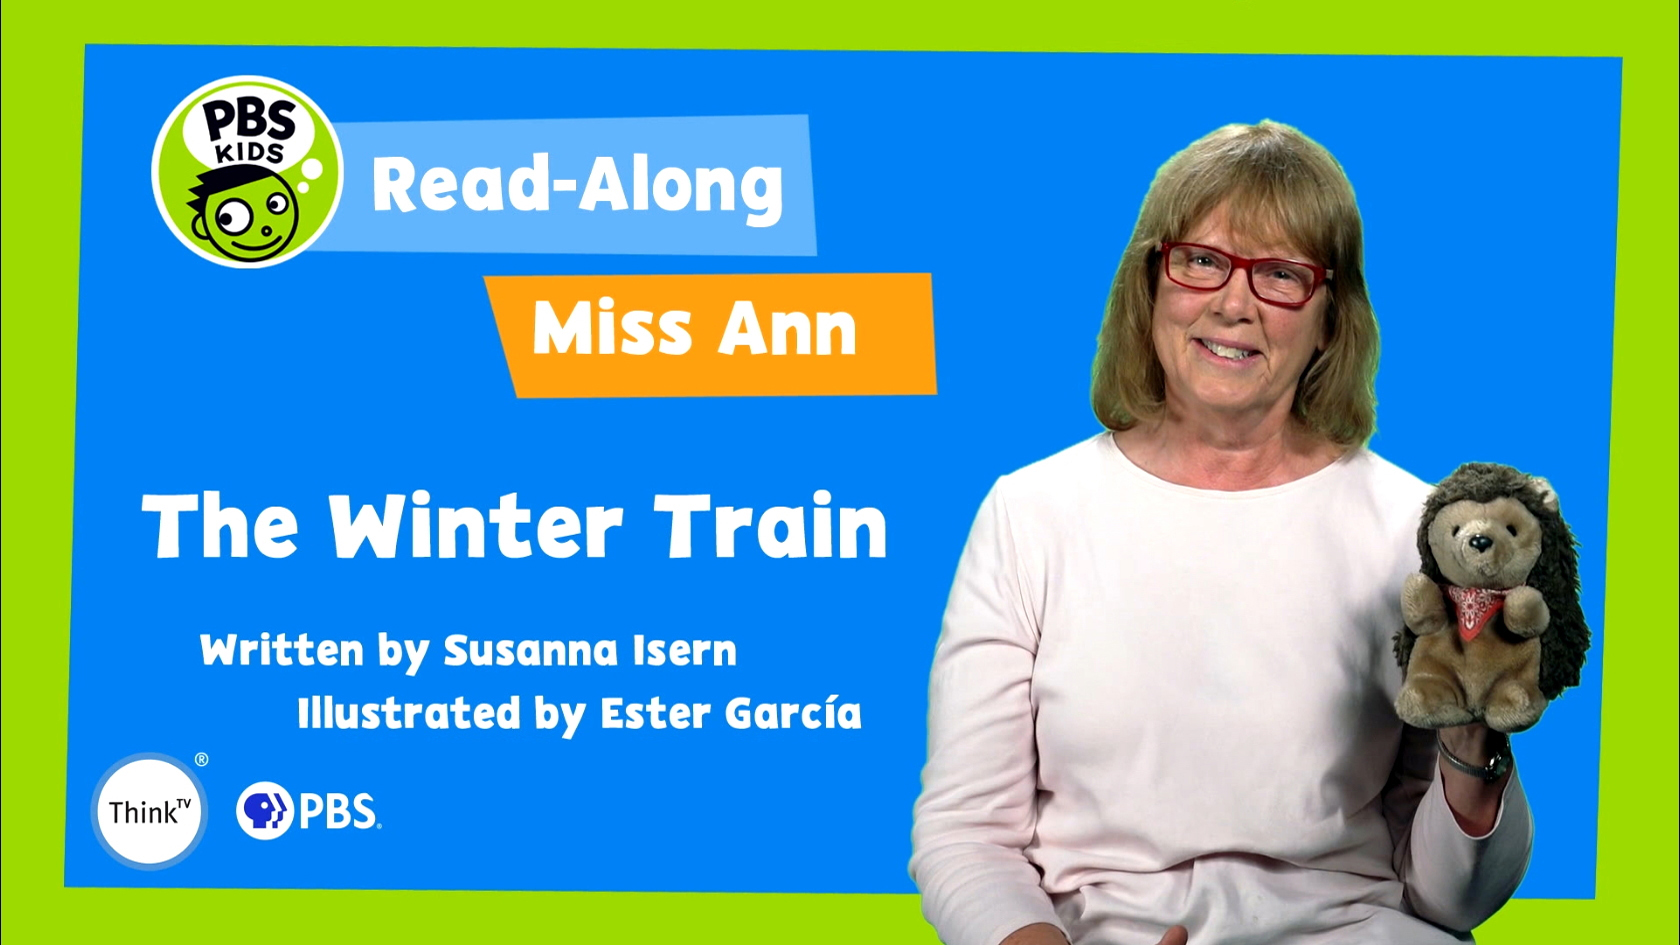 Read-Along with Miss Ann: The Winter Train